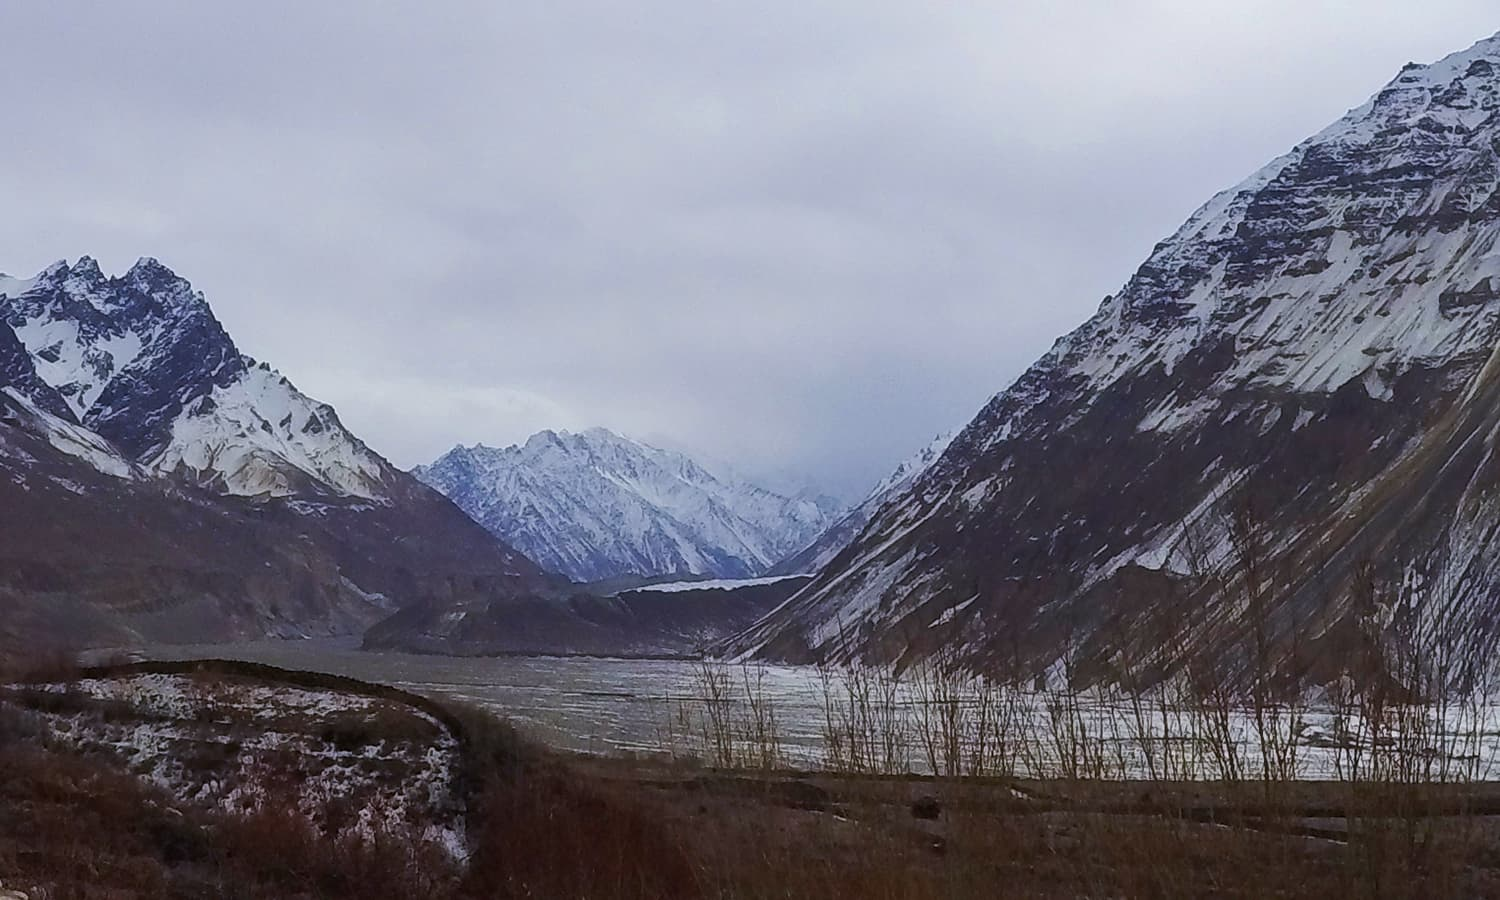 Malangoti Glacier is in the distance. This photo doesn't do justice to its beauty. — Photo by author